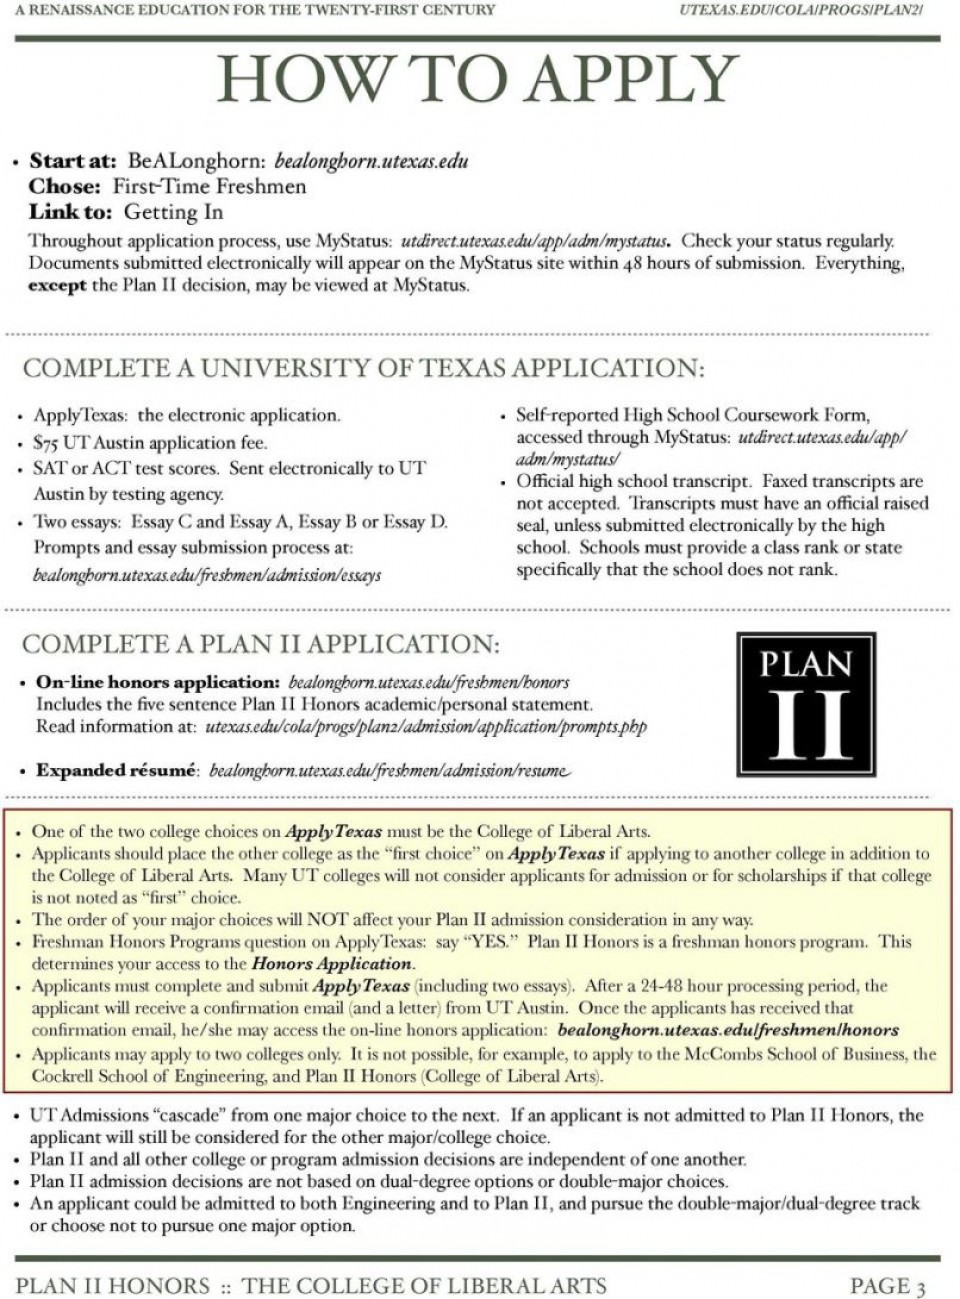 005 Essay Example Applytexas Prompts Poemdoc Or Apply Texas Topic Examples P Striking C Prompt 960